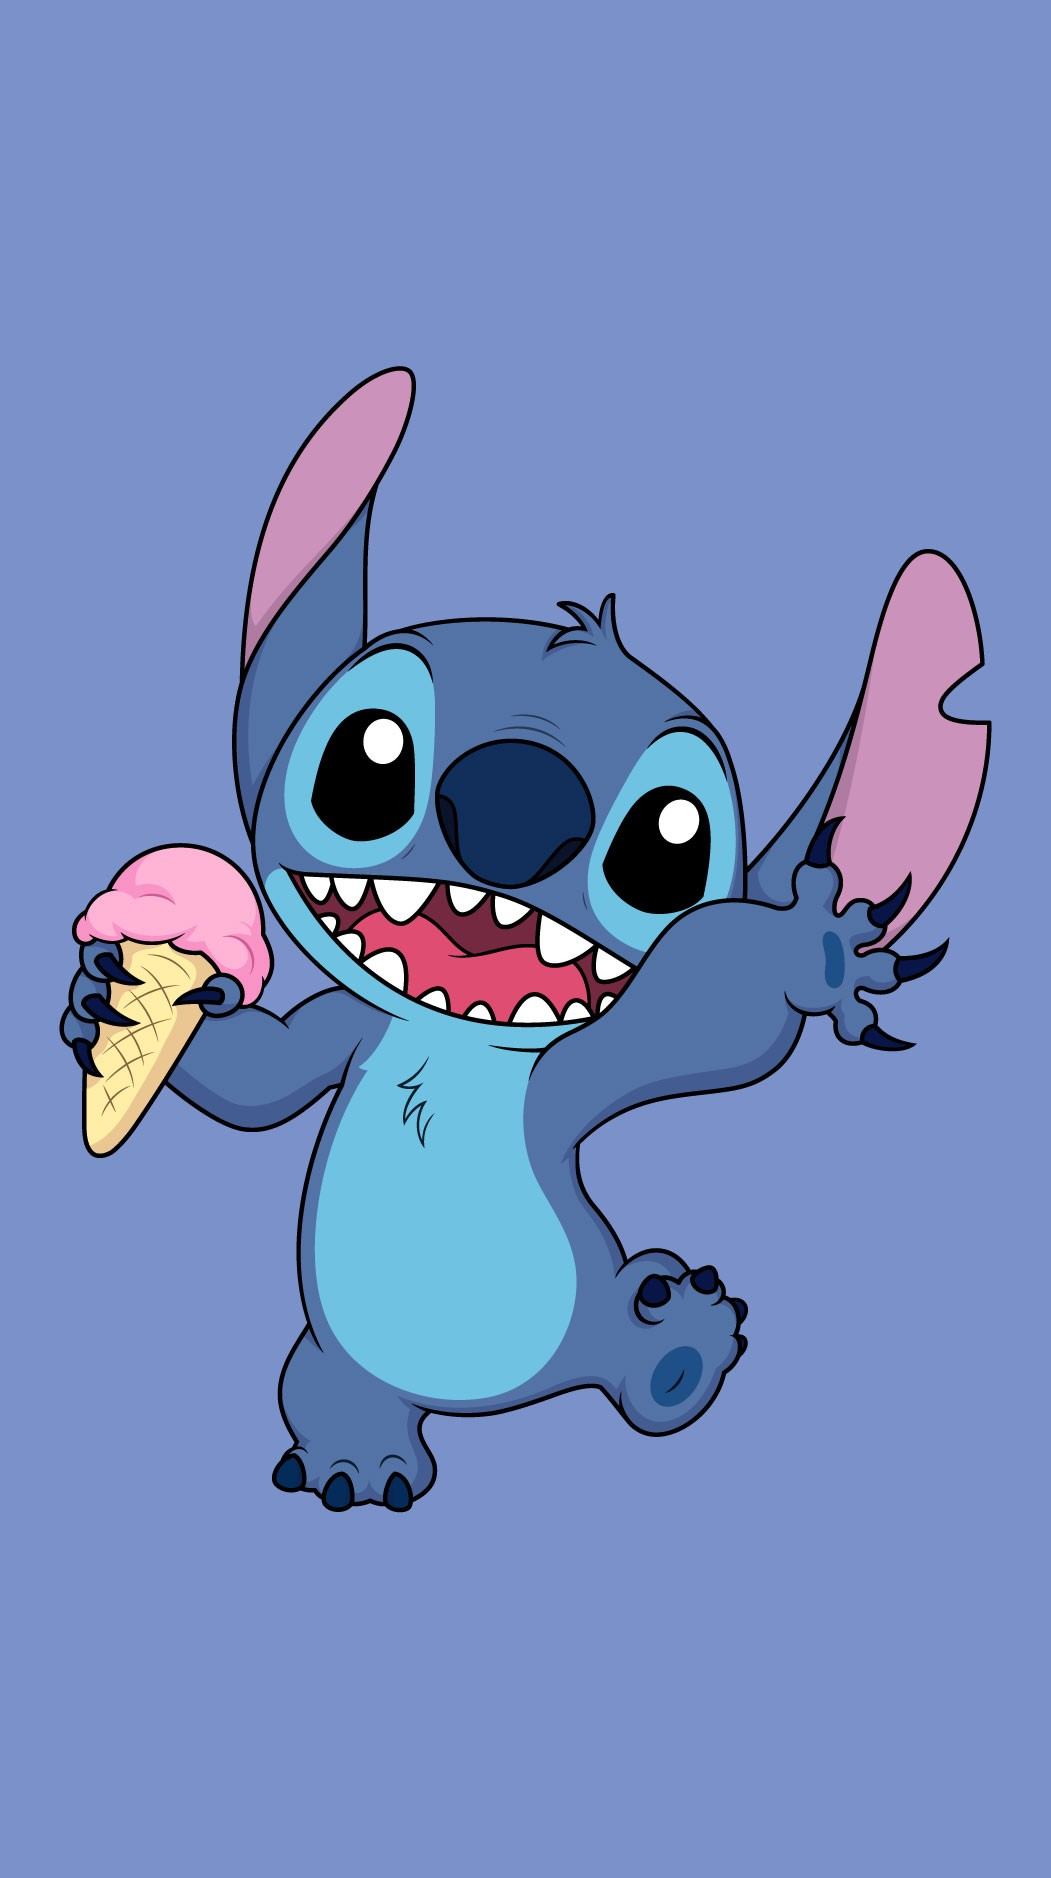 Stitch Ice Cream Wallpaper Kolpaper Awesome Free Hd Wallpapers